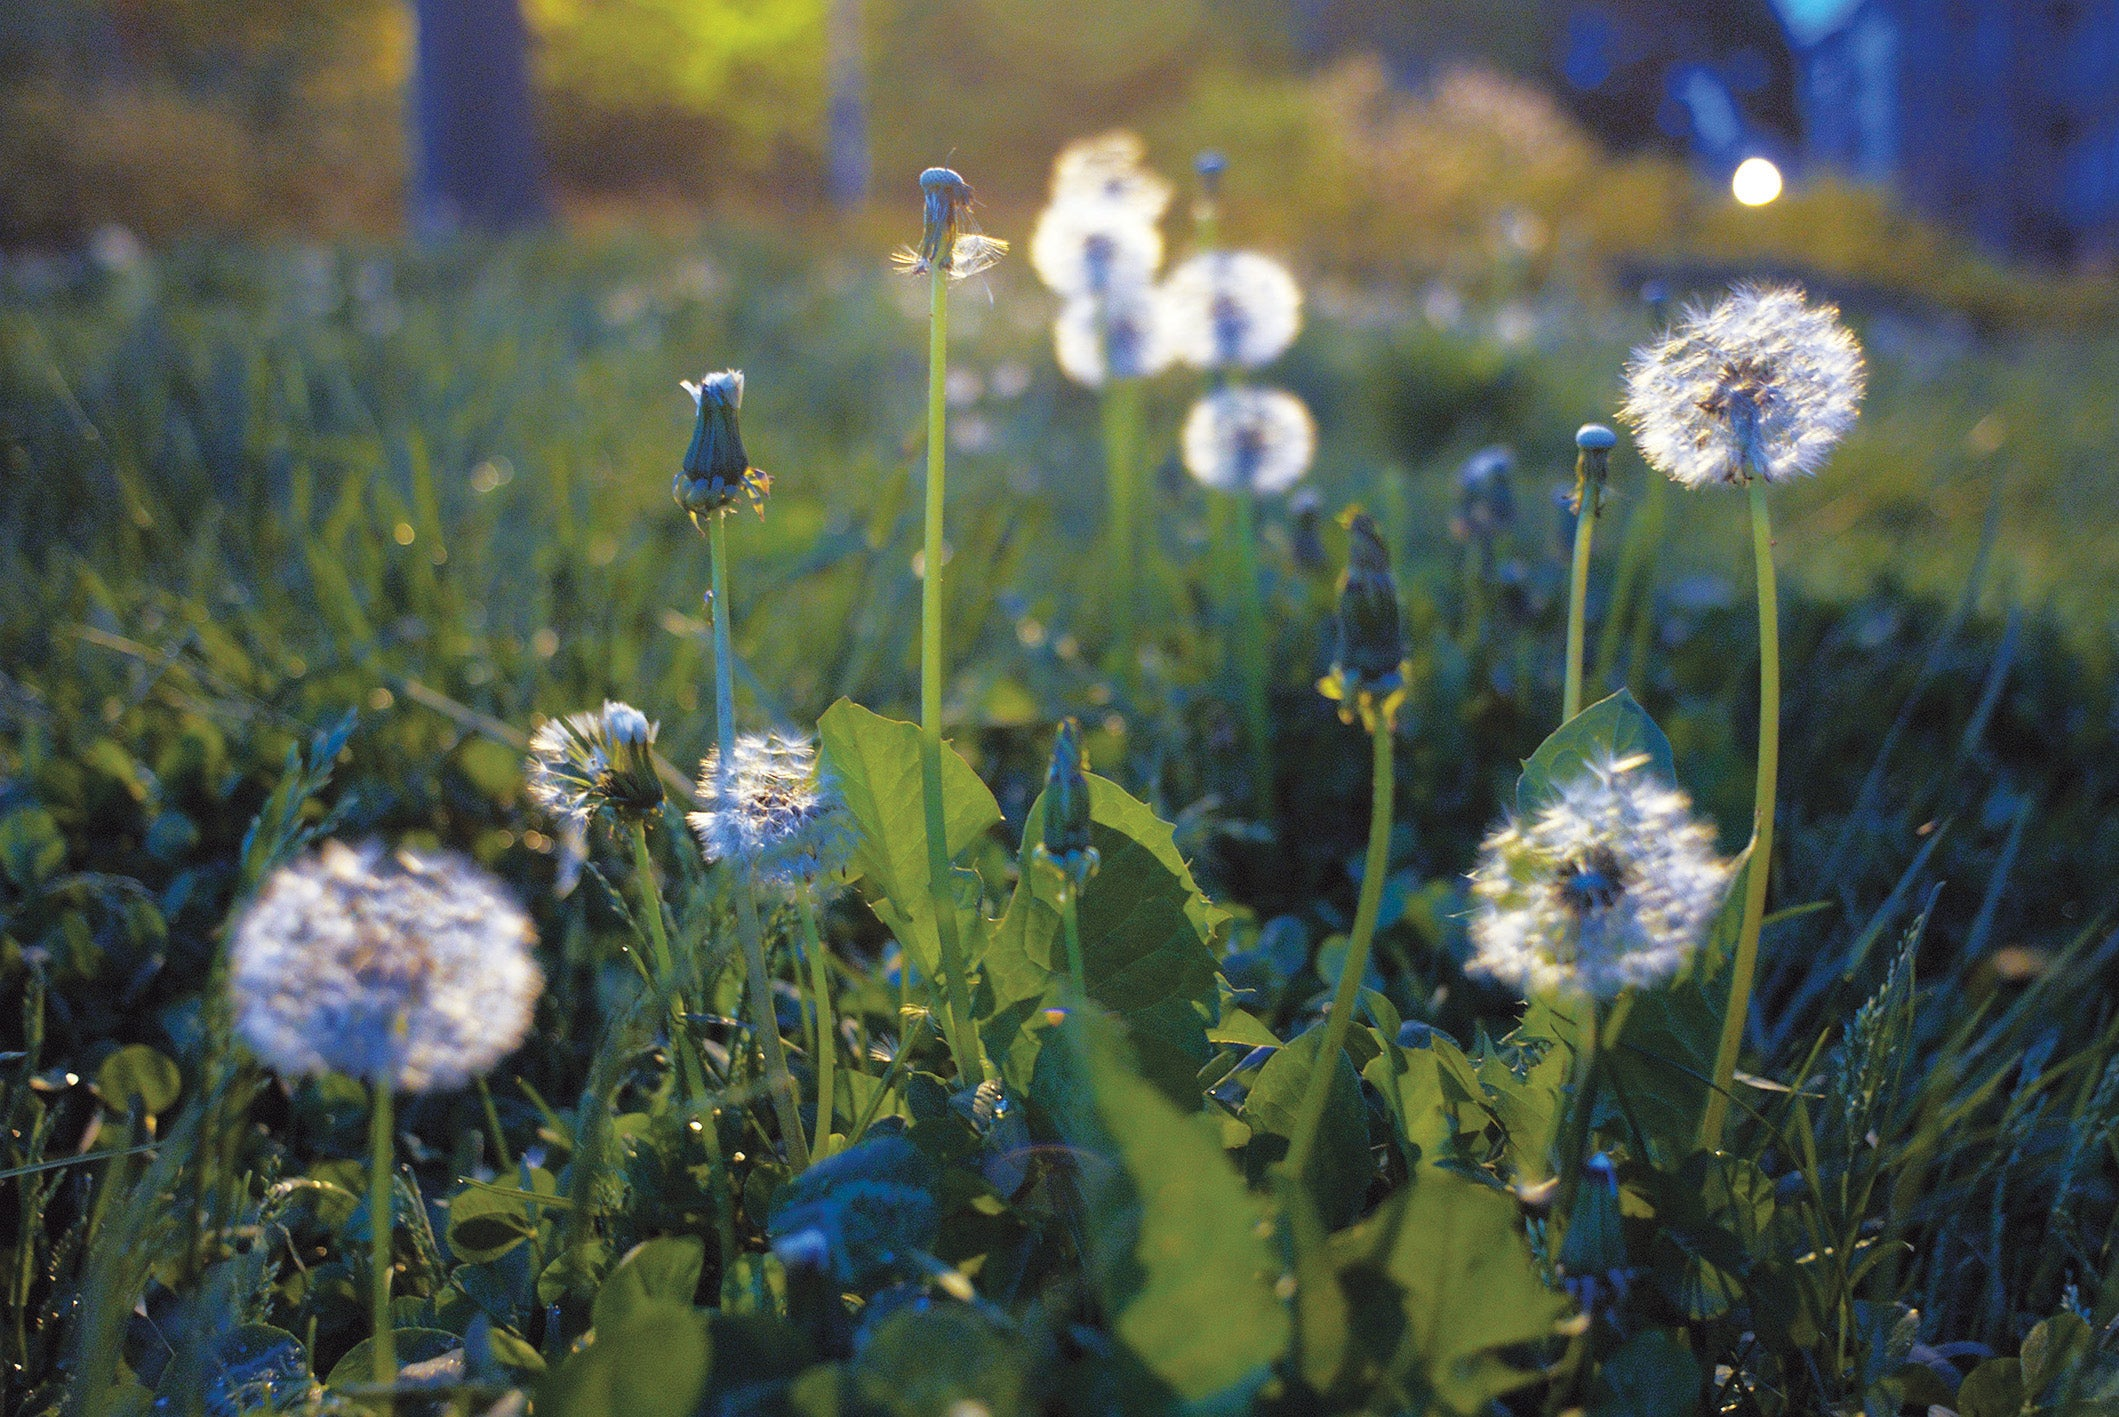 How should weeds be controlled in our green and sensitive age?